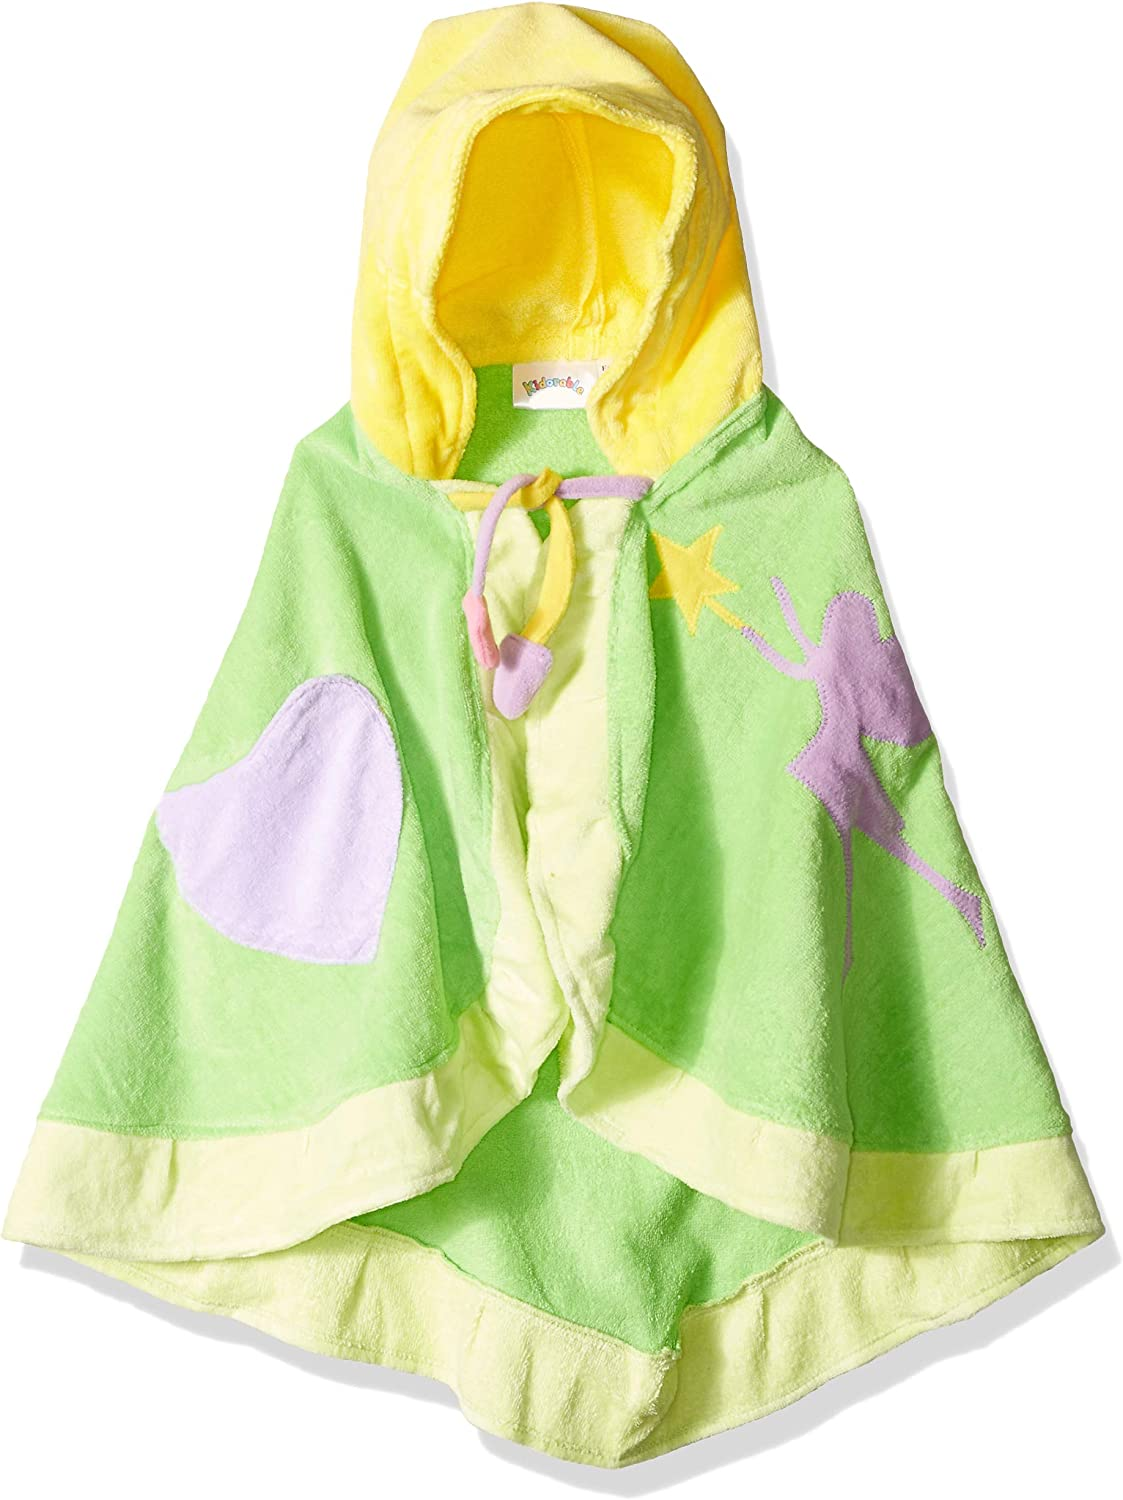 Kidorable Green Fairy All-Cotton Hooded Towel for Girls with Fun Fairy Wings and Flowers